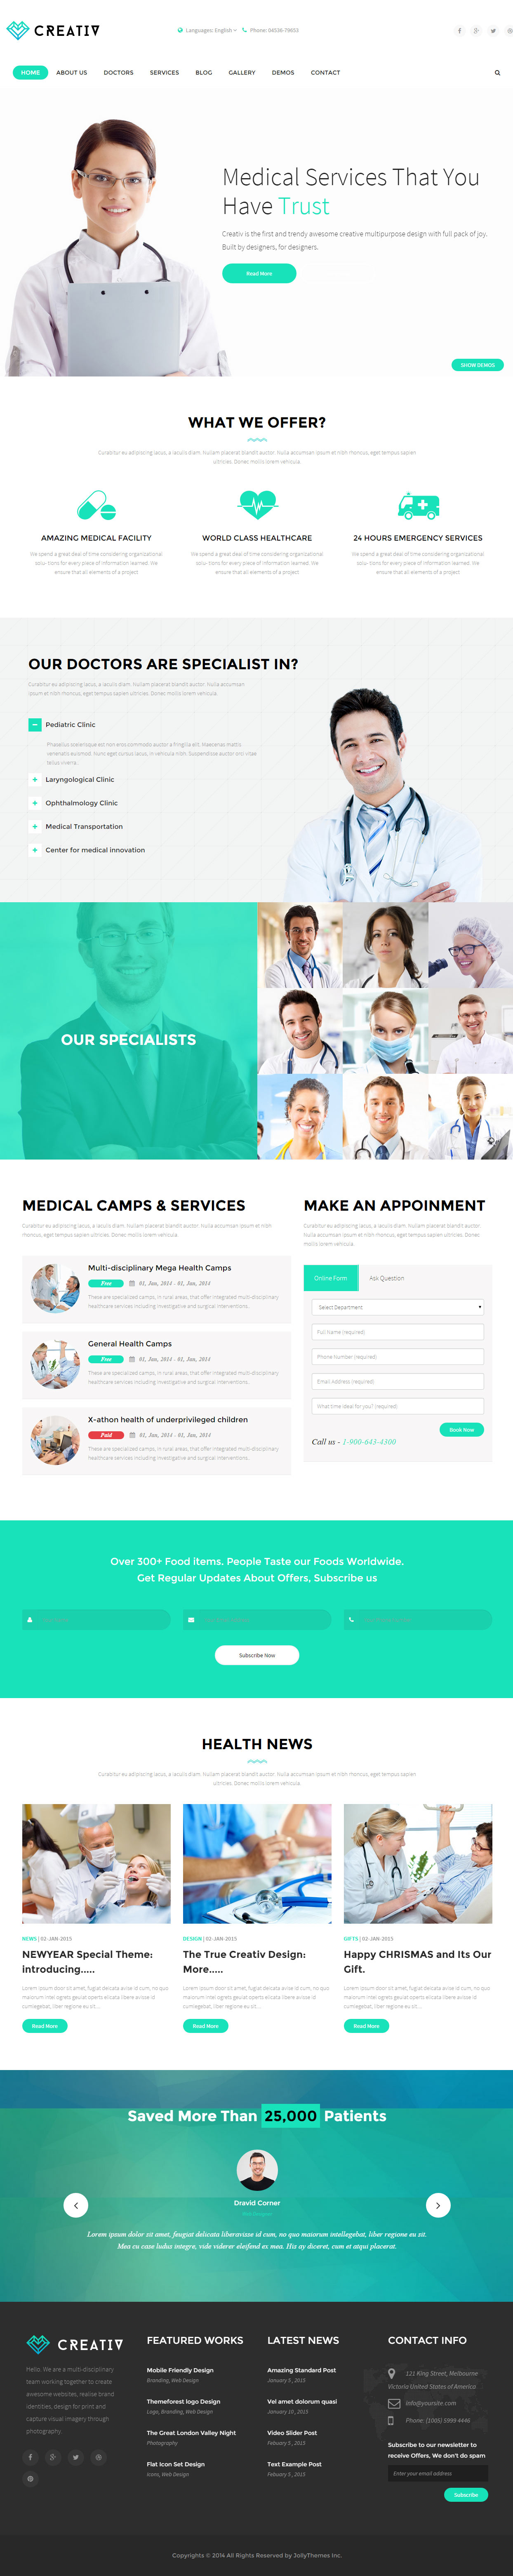 15 best responsive medical healthcare html5 templates 2015 responsive miracle. Black Bedroom Furniture Sets. Home Design Ideas